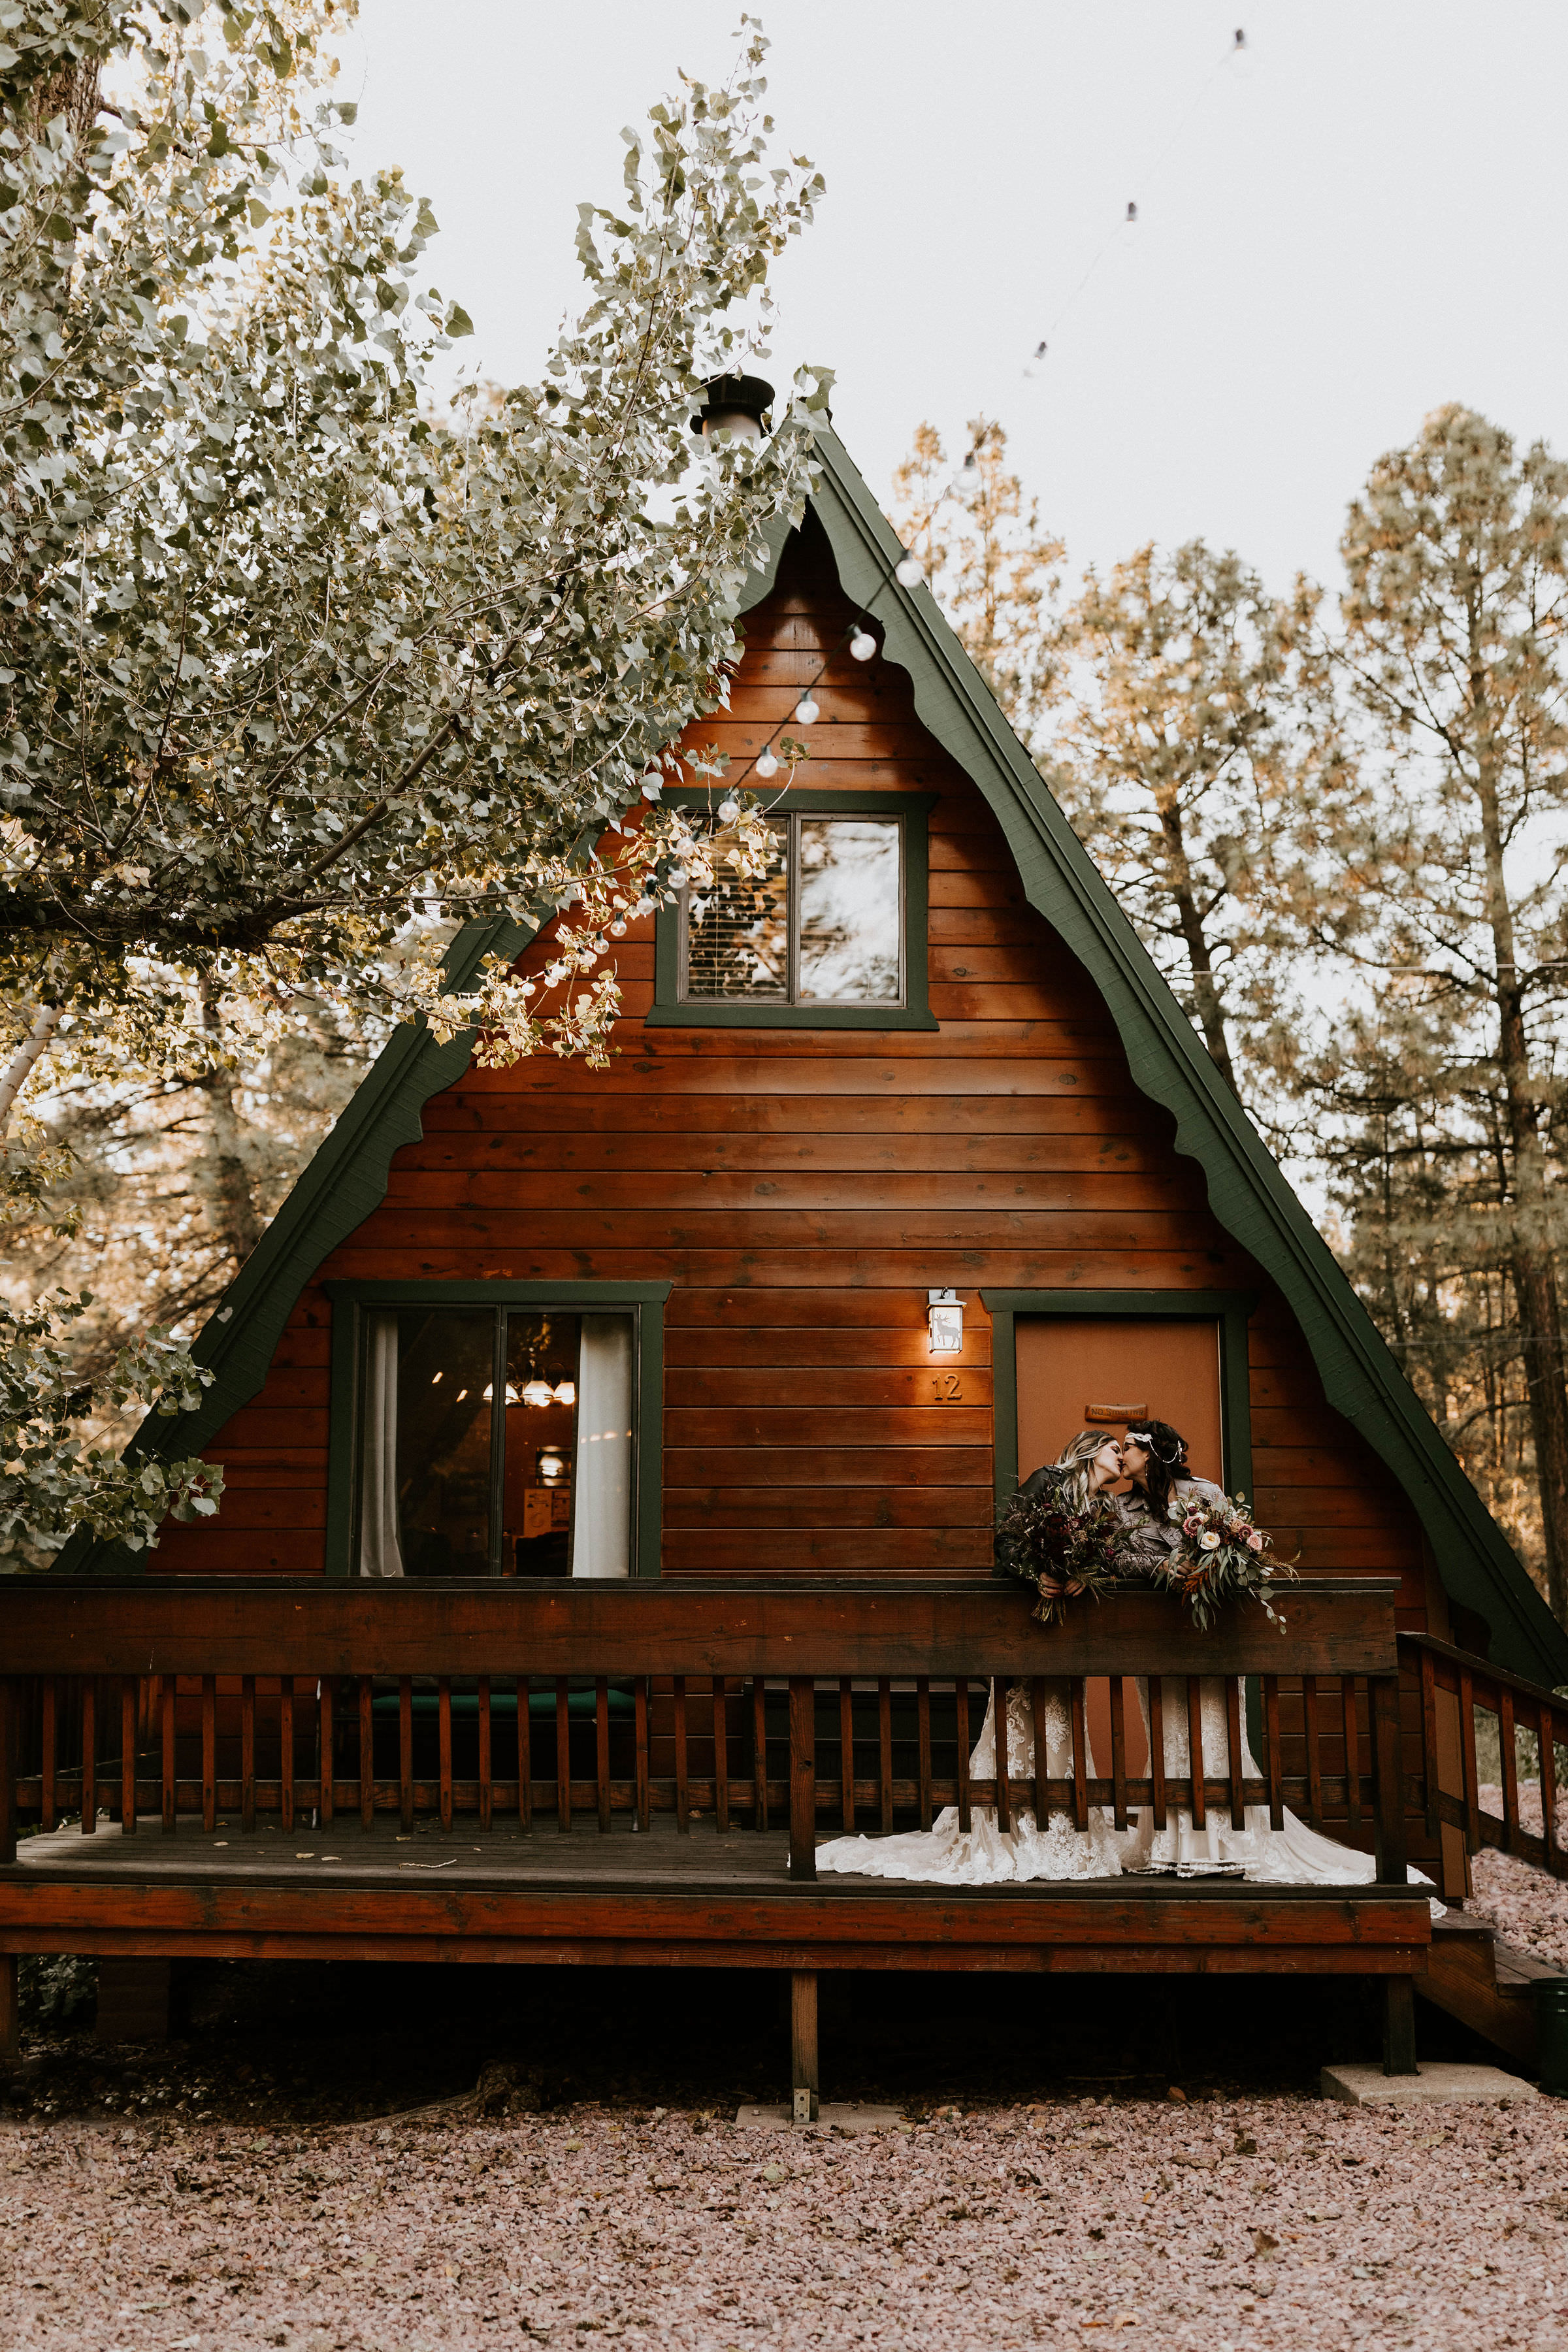 A-frame Cabins on Strawberry Hill in ArizonaCouple at A Frame Cabin in Strawberry Hill, Arizona